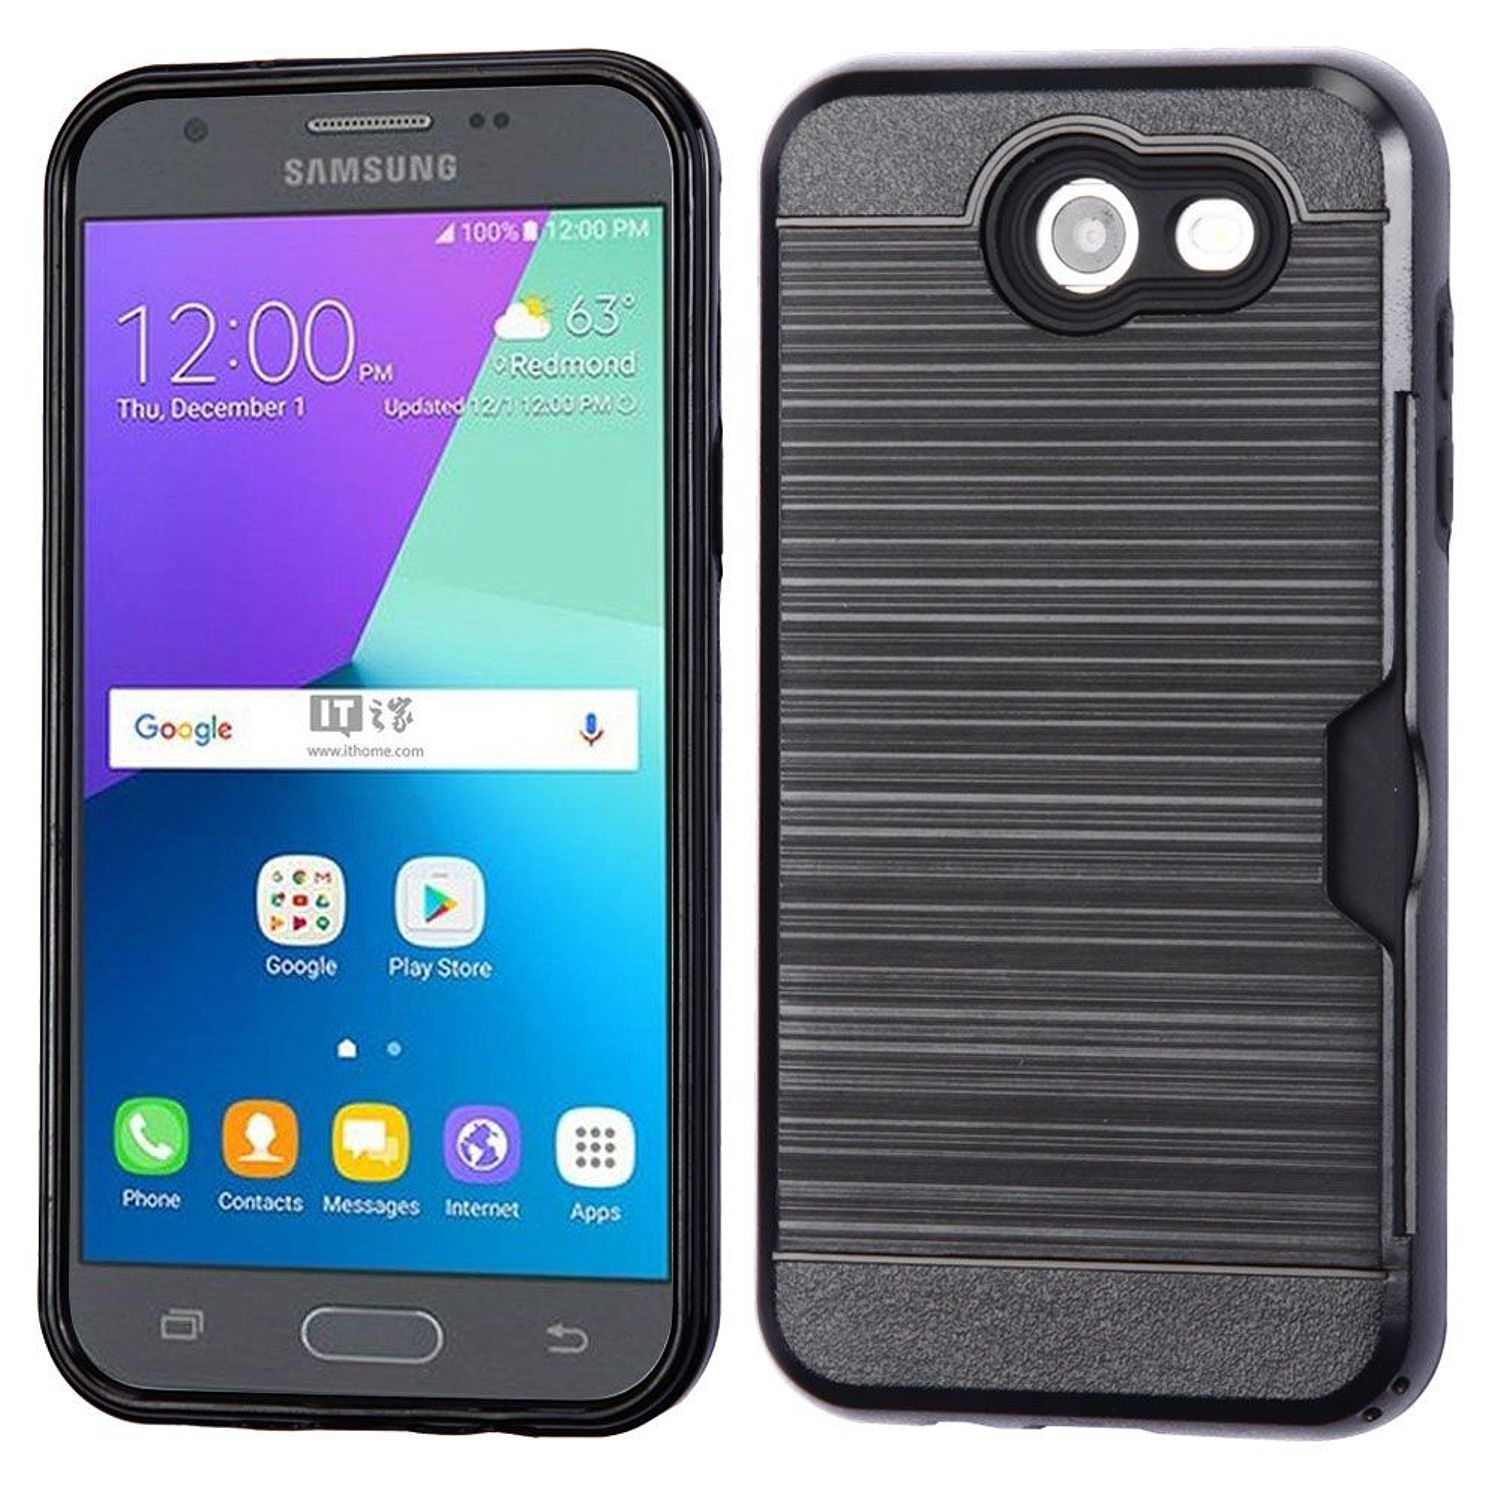 Galaxy J3 Luna Pro case by Insten [Shock Absorbing] Hybrid Hard Plastic/Soft TPU Rubber with Card Slot Case Cover For Samsung Galaxy Express Prime 2/J3 (2017), Black